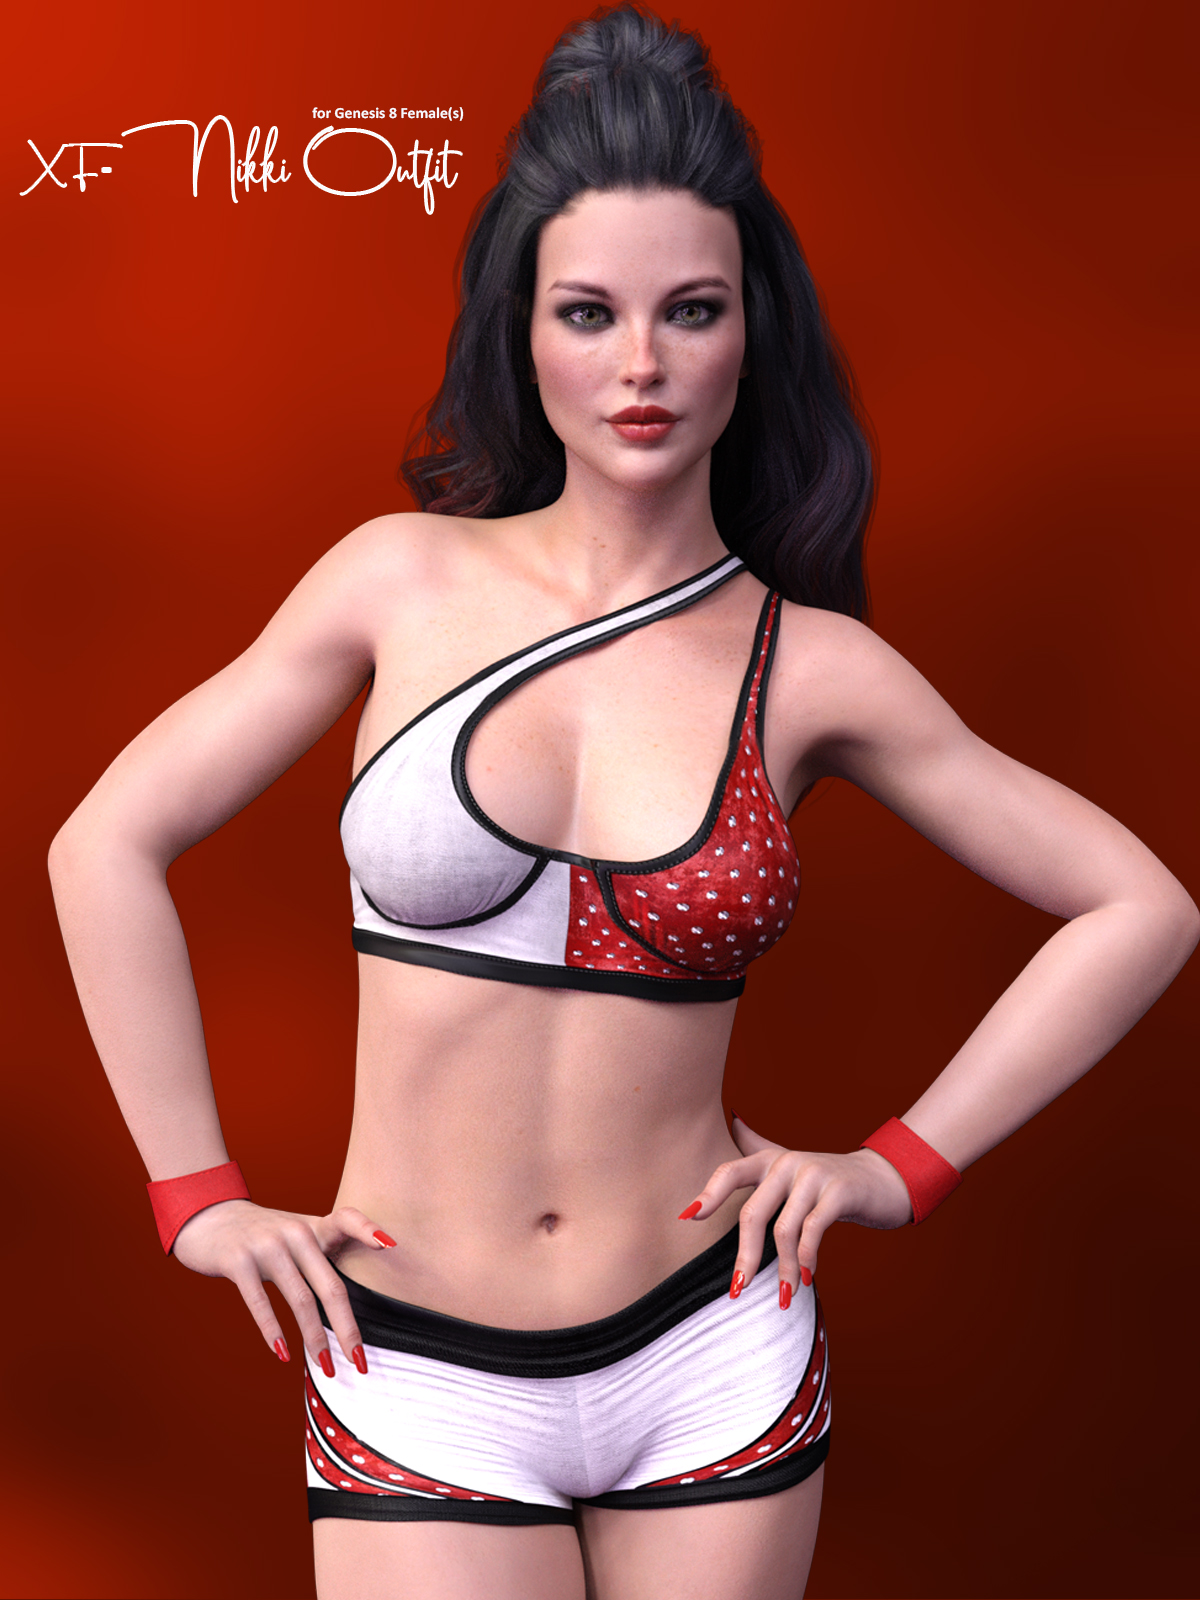 X-Fashion Nikki Sport Outfit for Genesis 8 Females